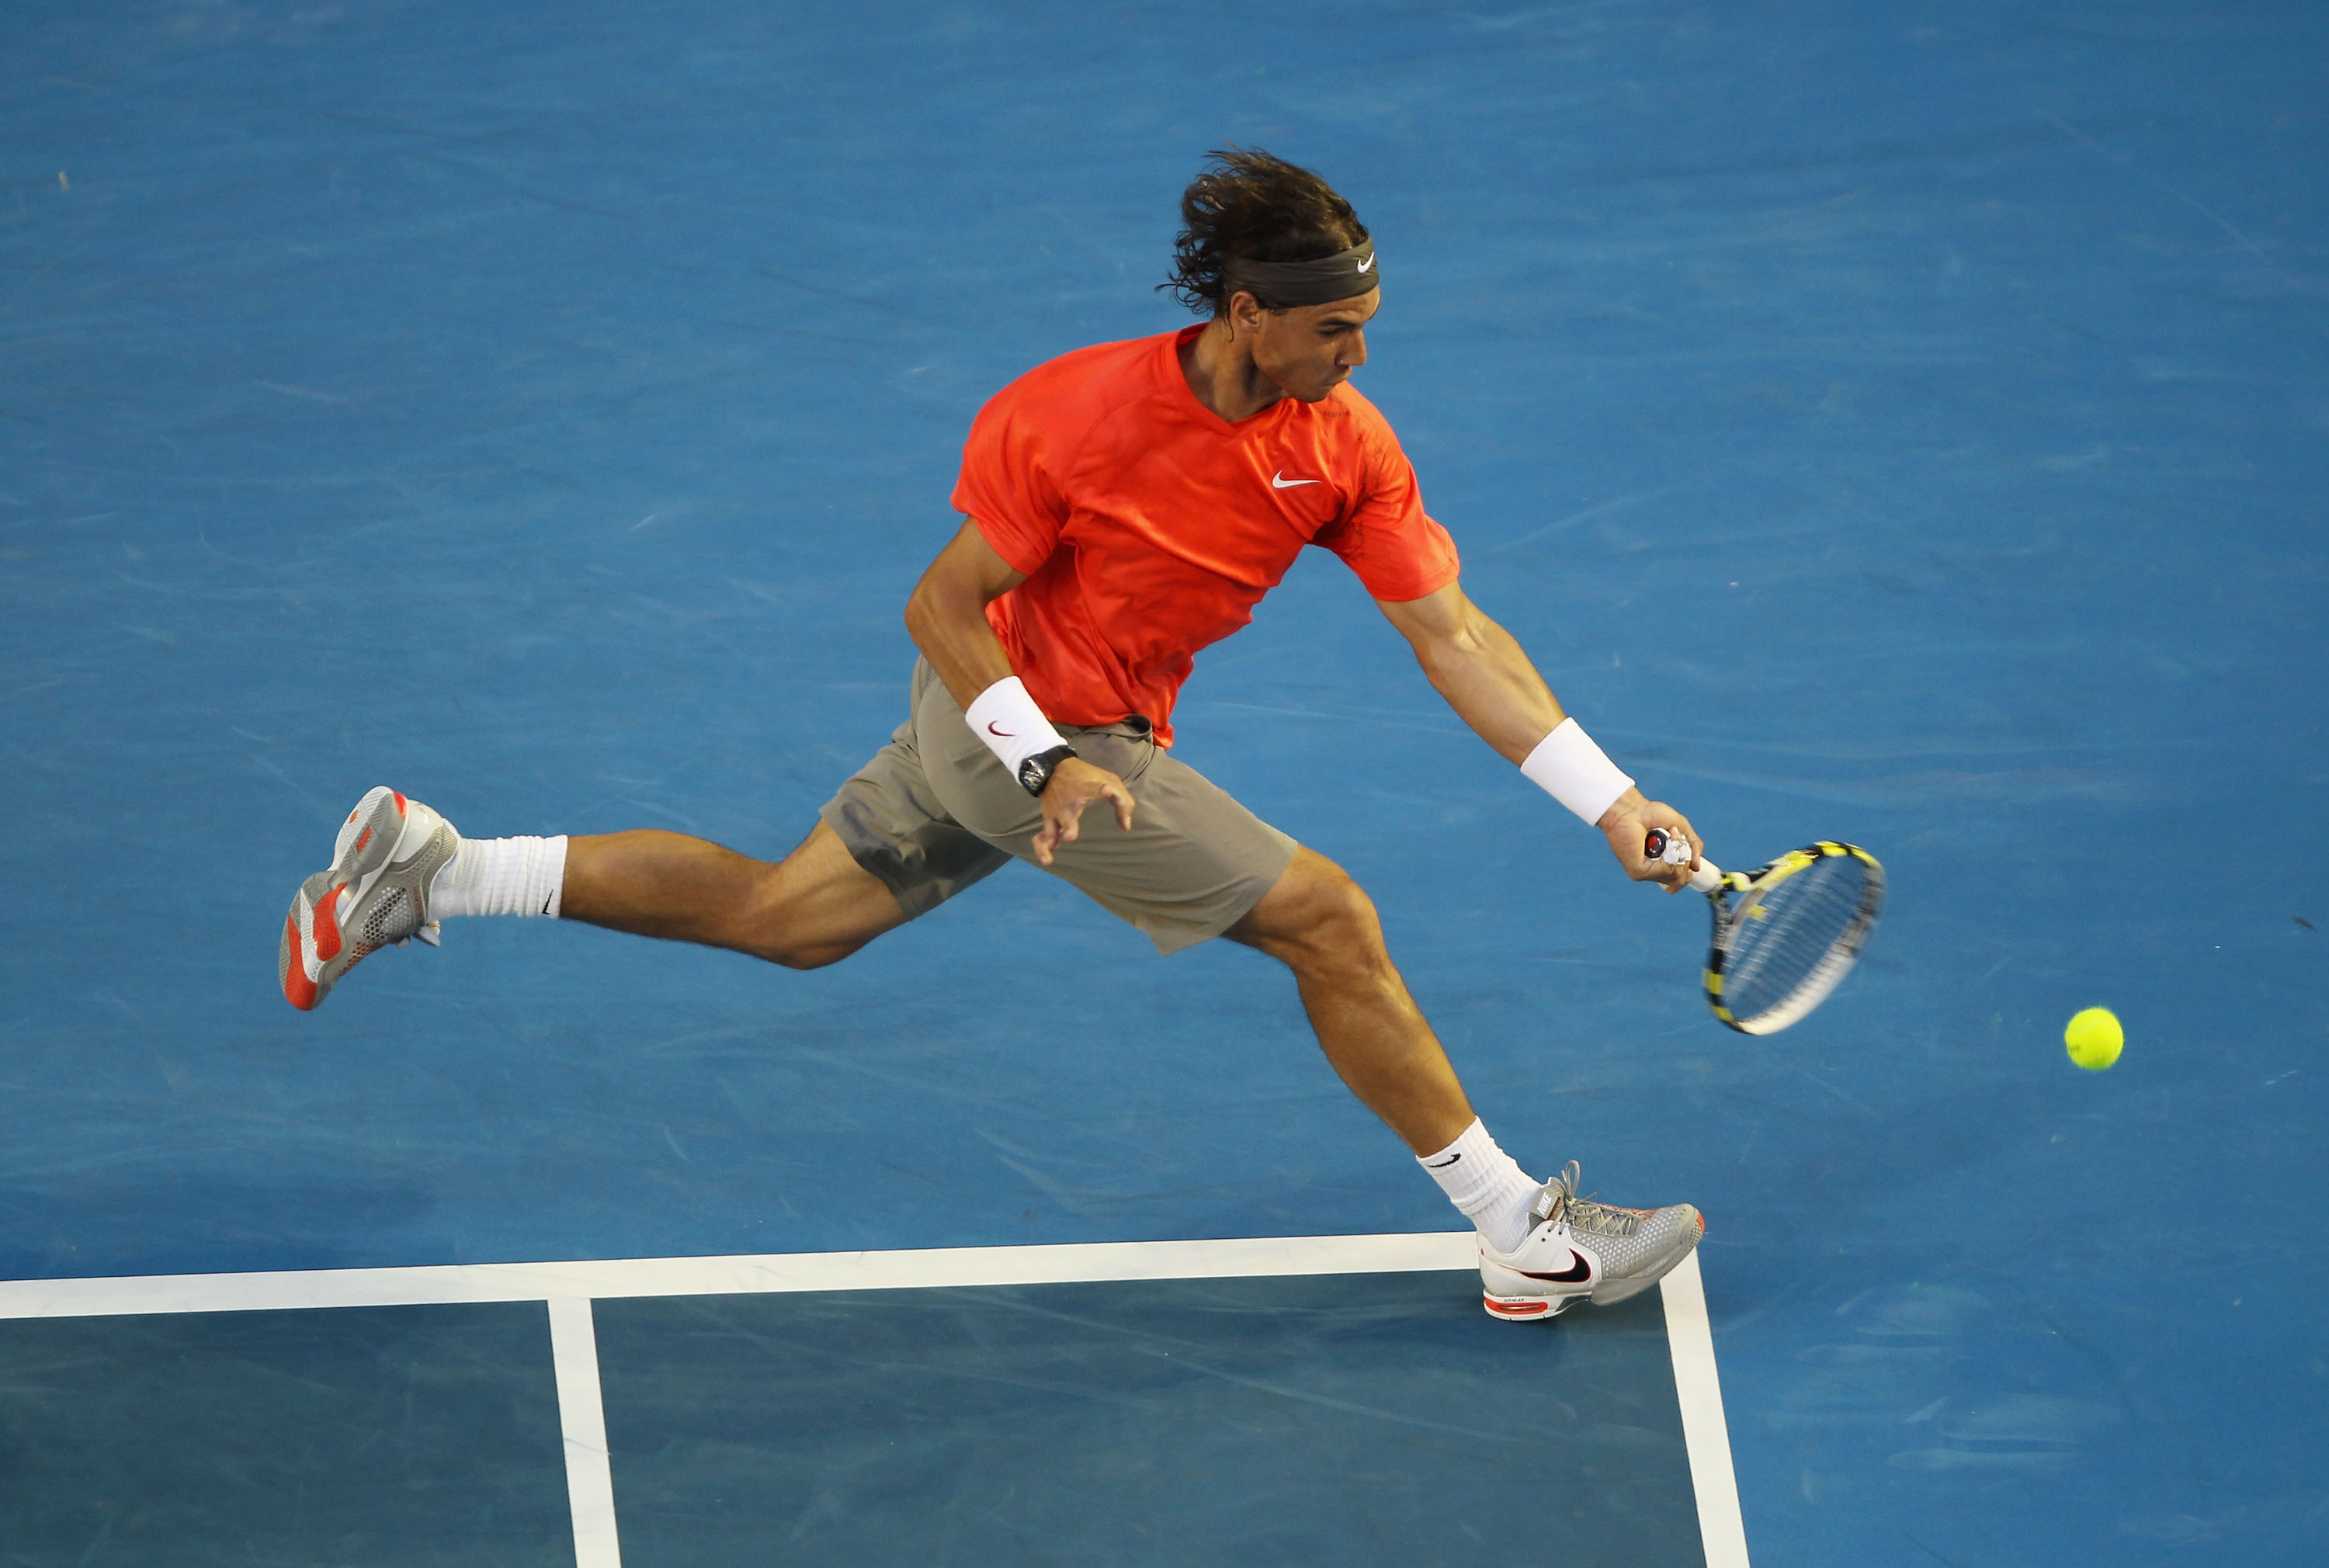 Nadal ended up tearfully losing to David Ferrer in the quarterfinals at this Australian Open, but all we can remember is his distractingly large t-shirt.